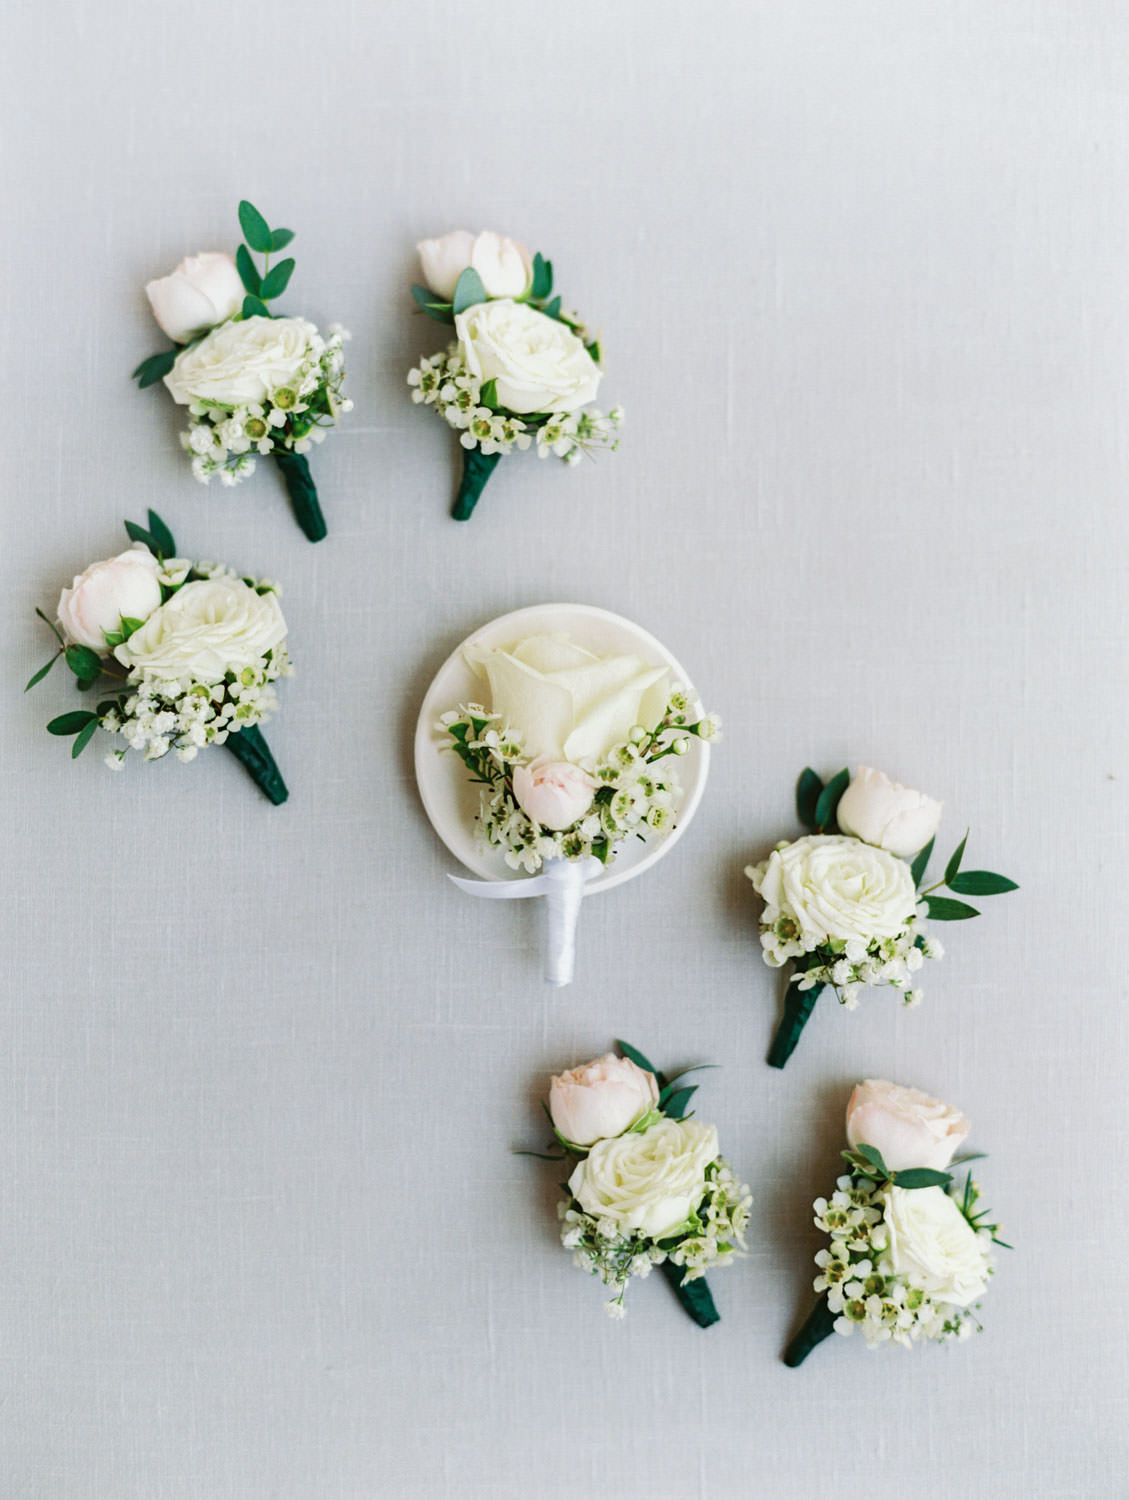 Ivory rose boutonnieres with pop of green. Wedding at Rancho Bernardo Inn. Film photo by Cavin Elizabeth Photography